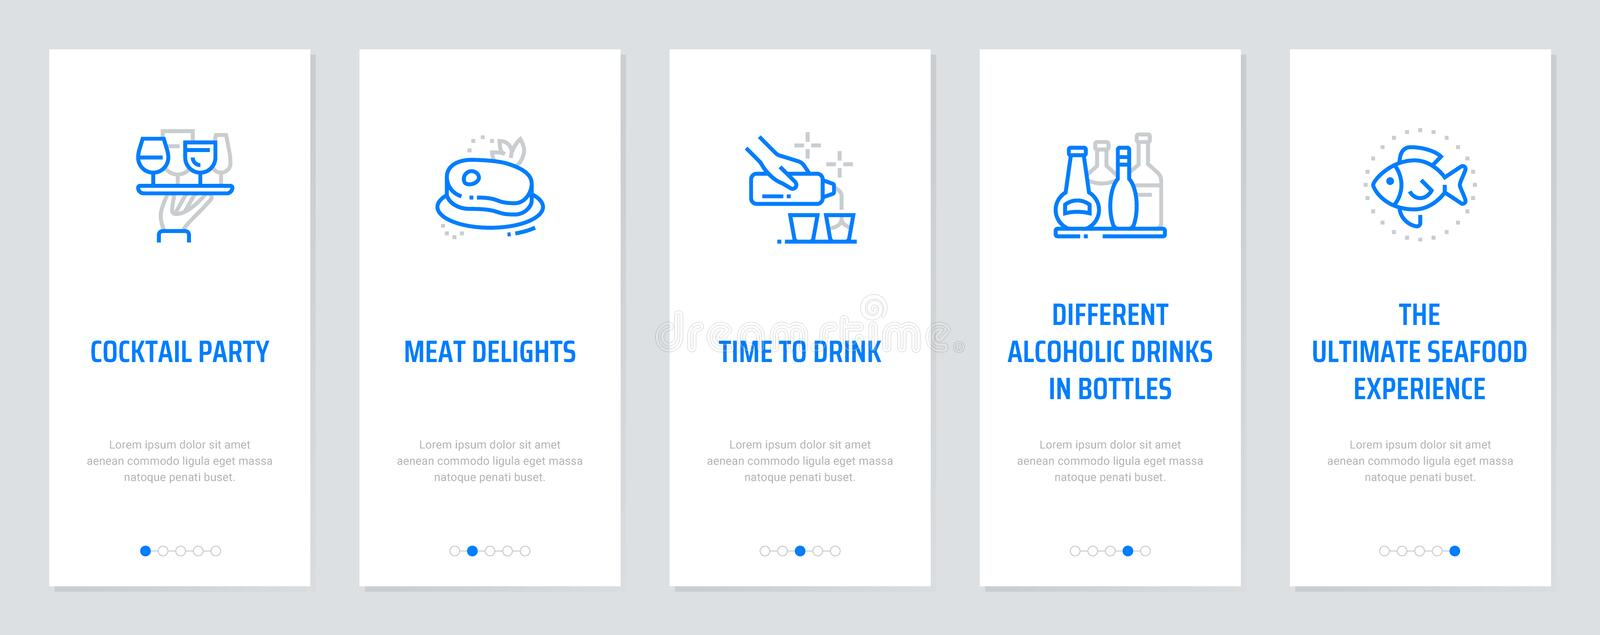 Cocktail party, Meat Delights, Time to drink. Different alcoholic drinks in bottles, The ultimate seafood experience Vertical Cards with strong metaphors royalty free illustration